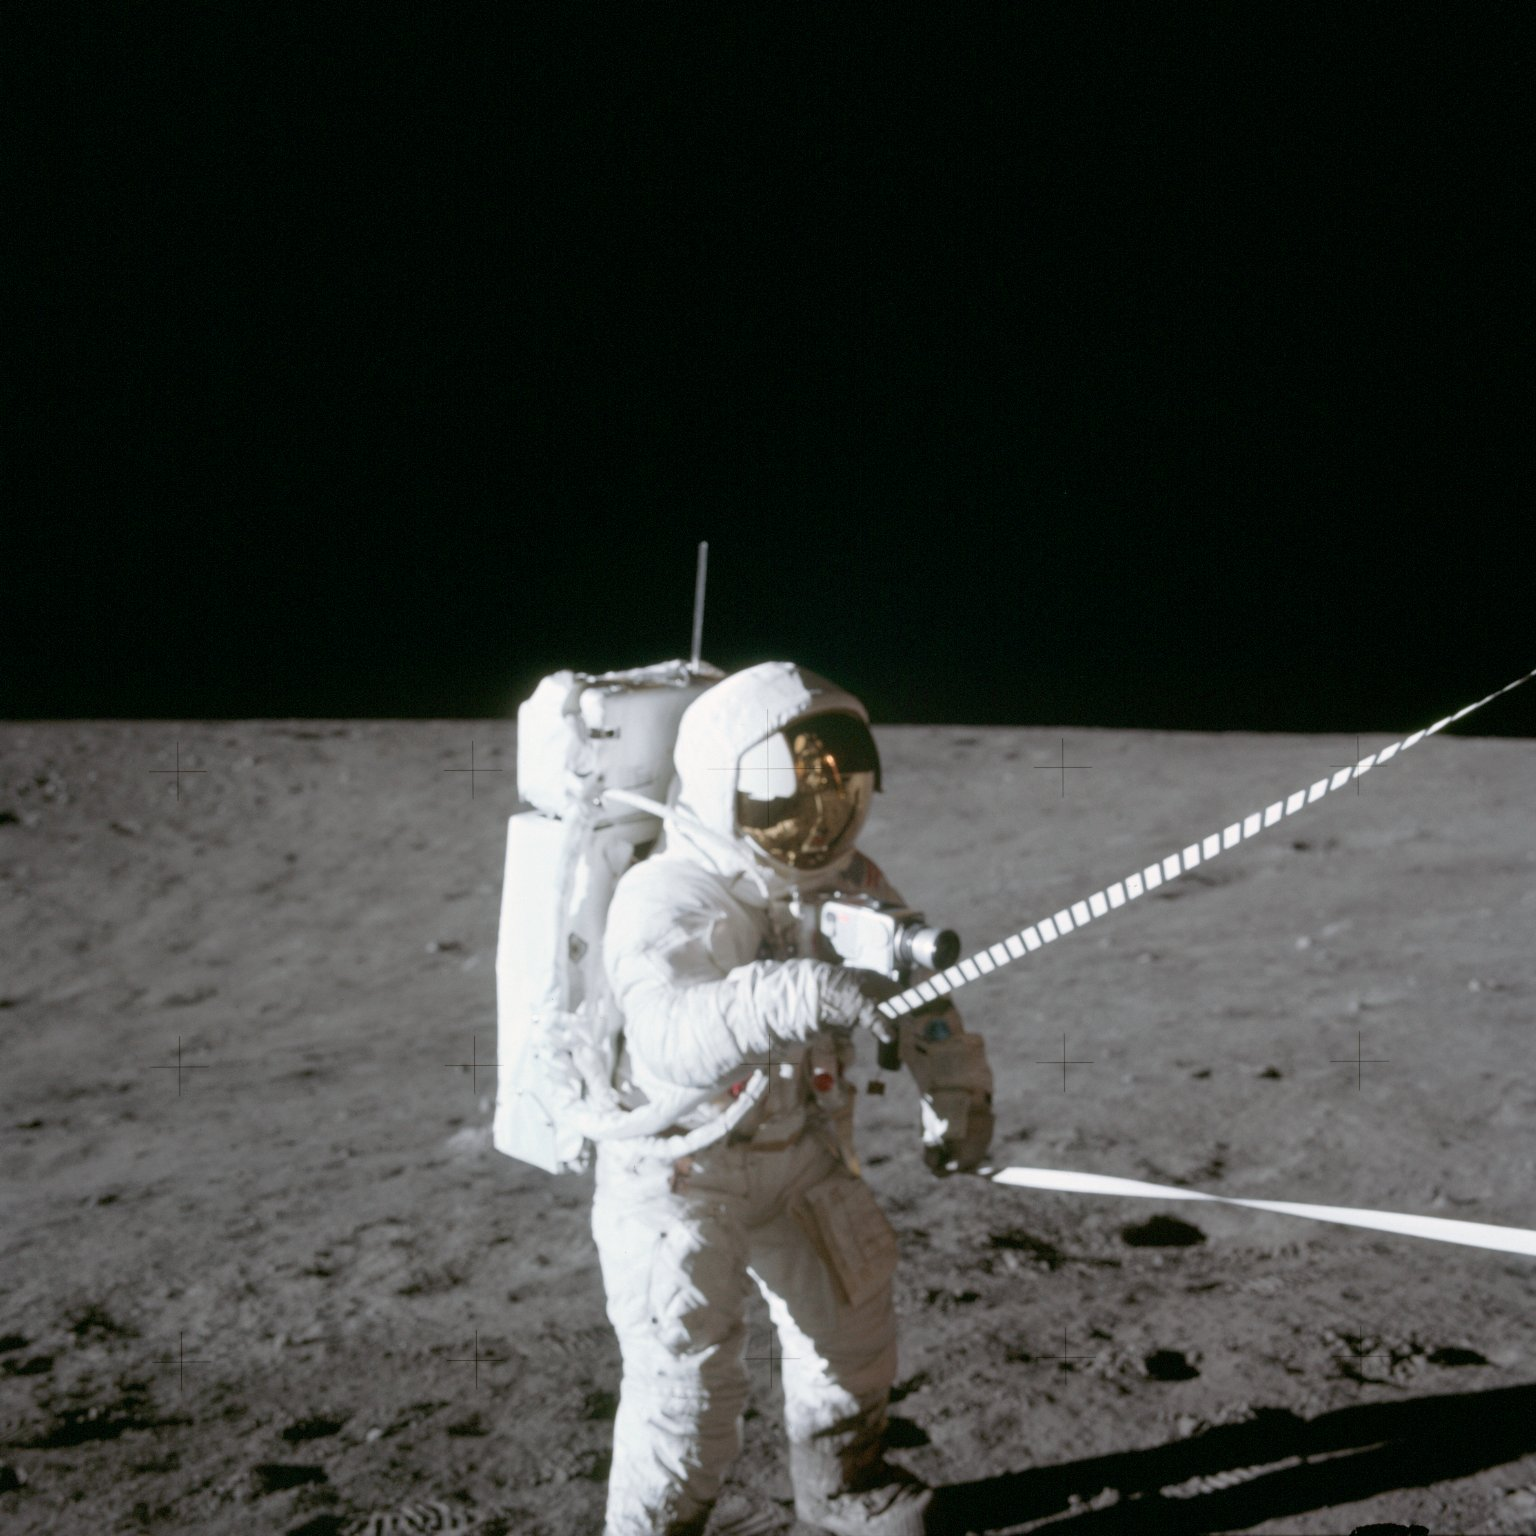 Apollo 12 Mission image - CDR with lunar equipment conveyer